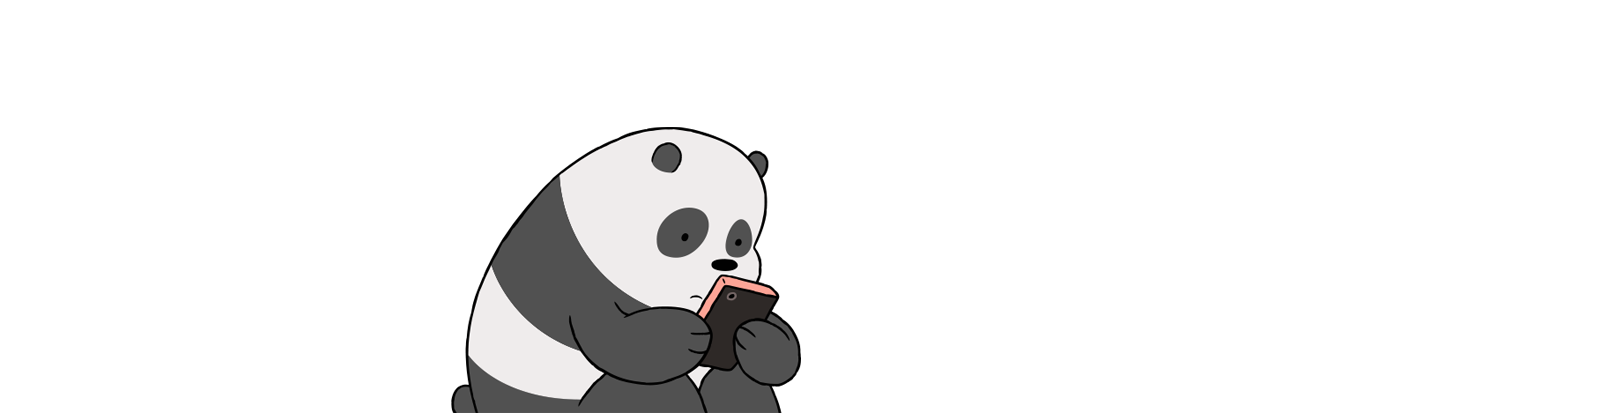 1600x413 We Bare Bears Play Games, Watch Videos And Downloads Cartoon